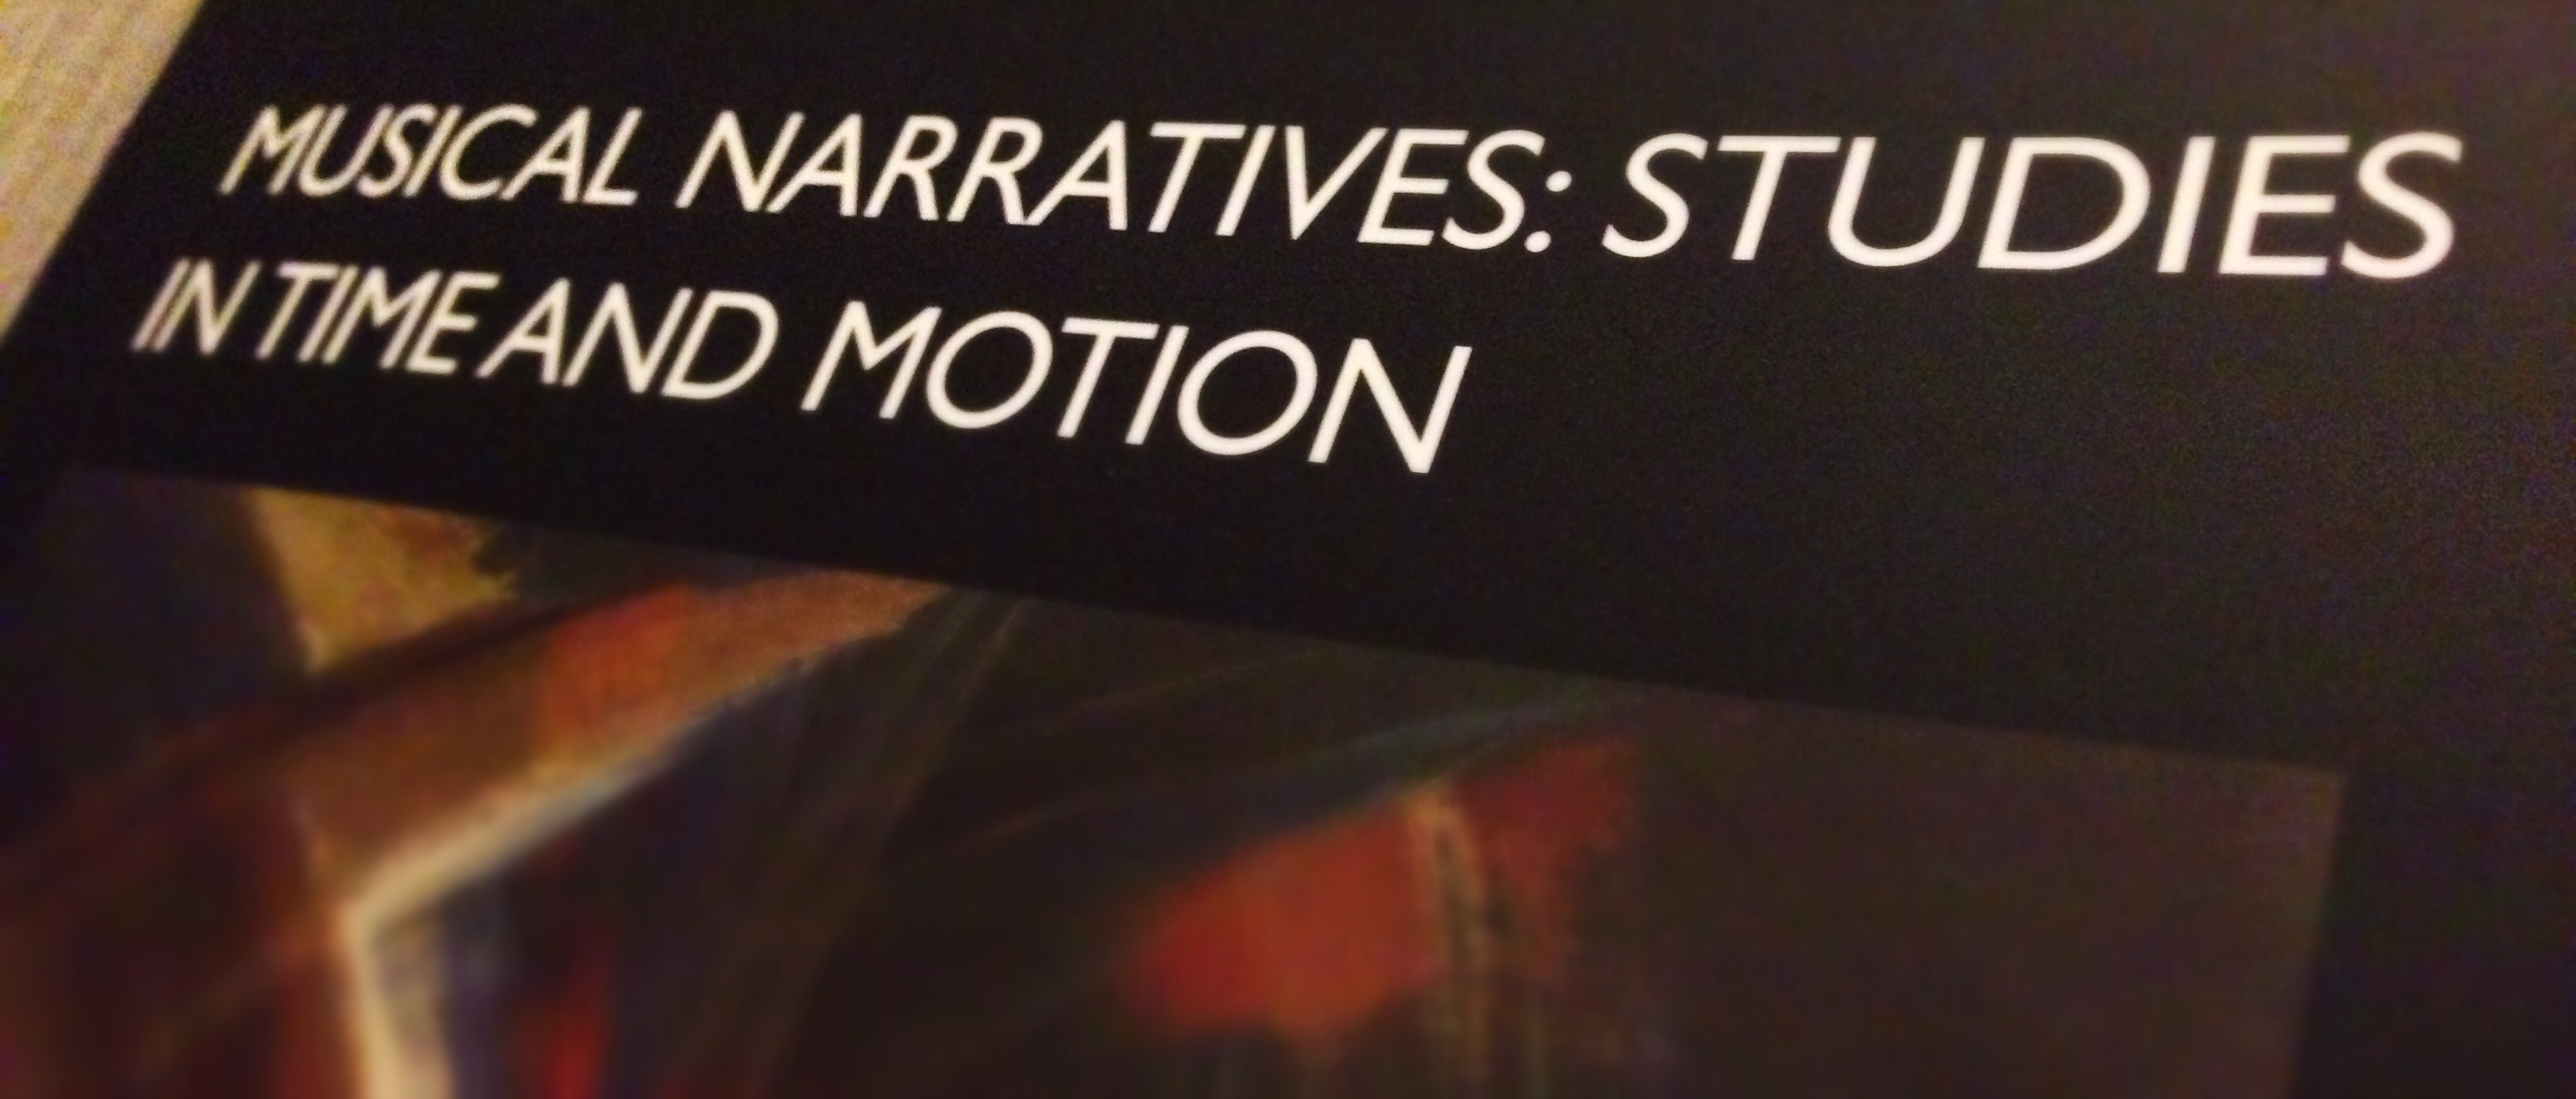 New publication in Contemporary Music Review